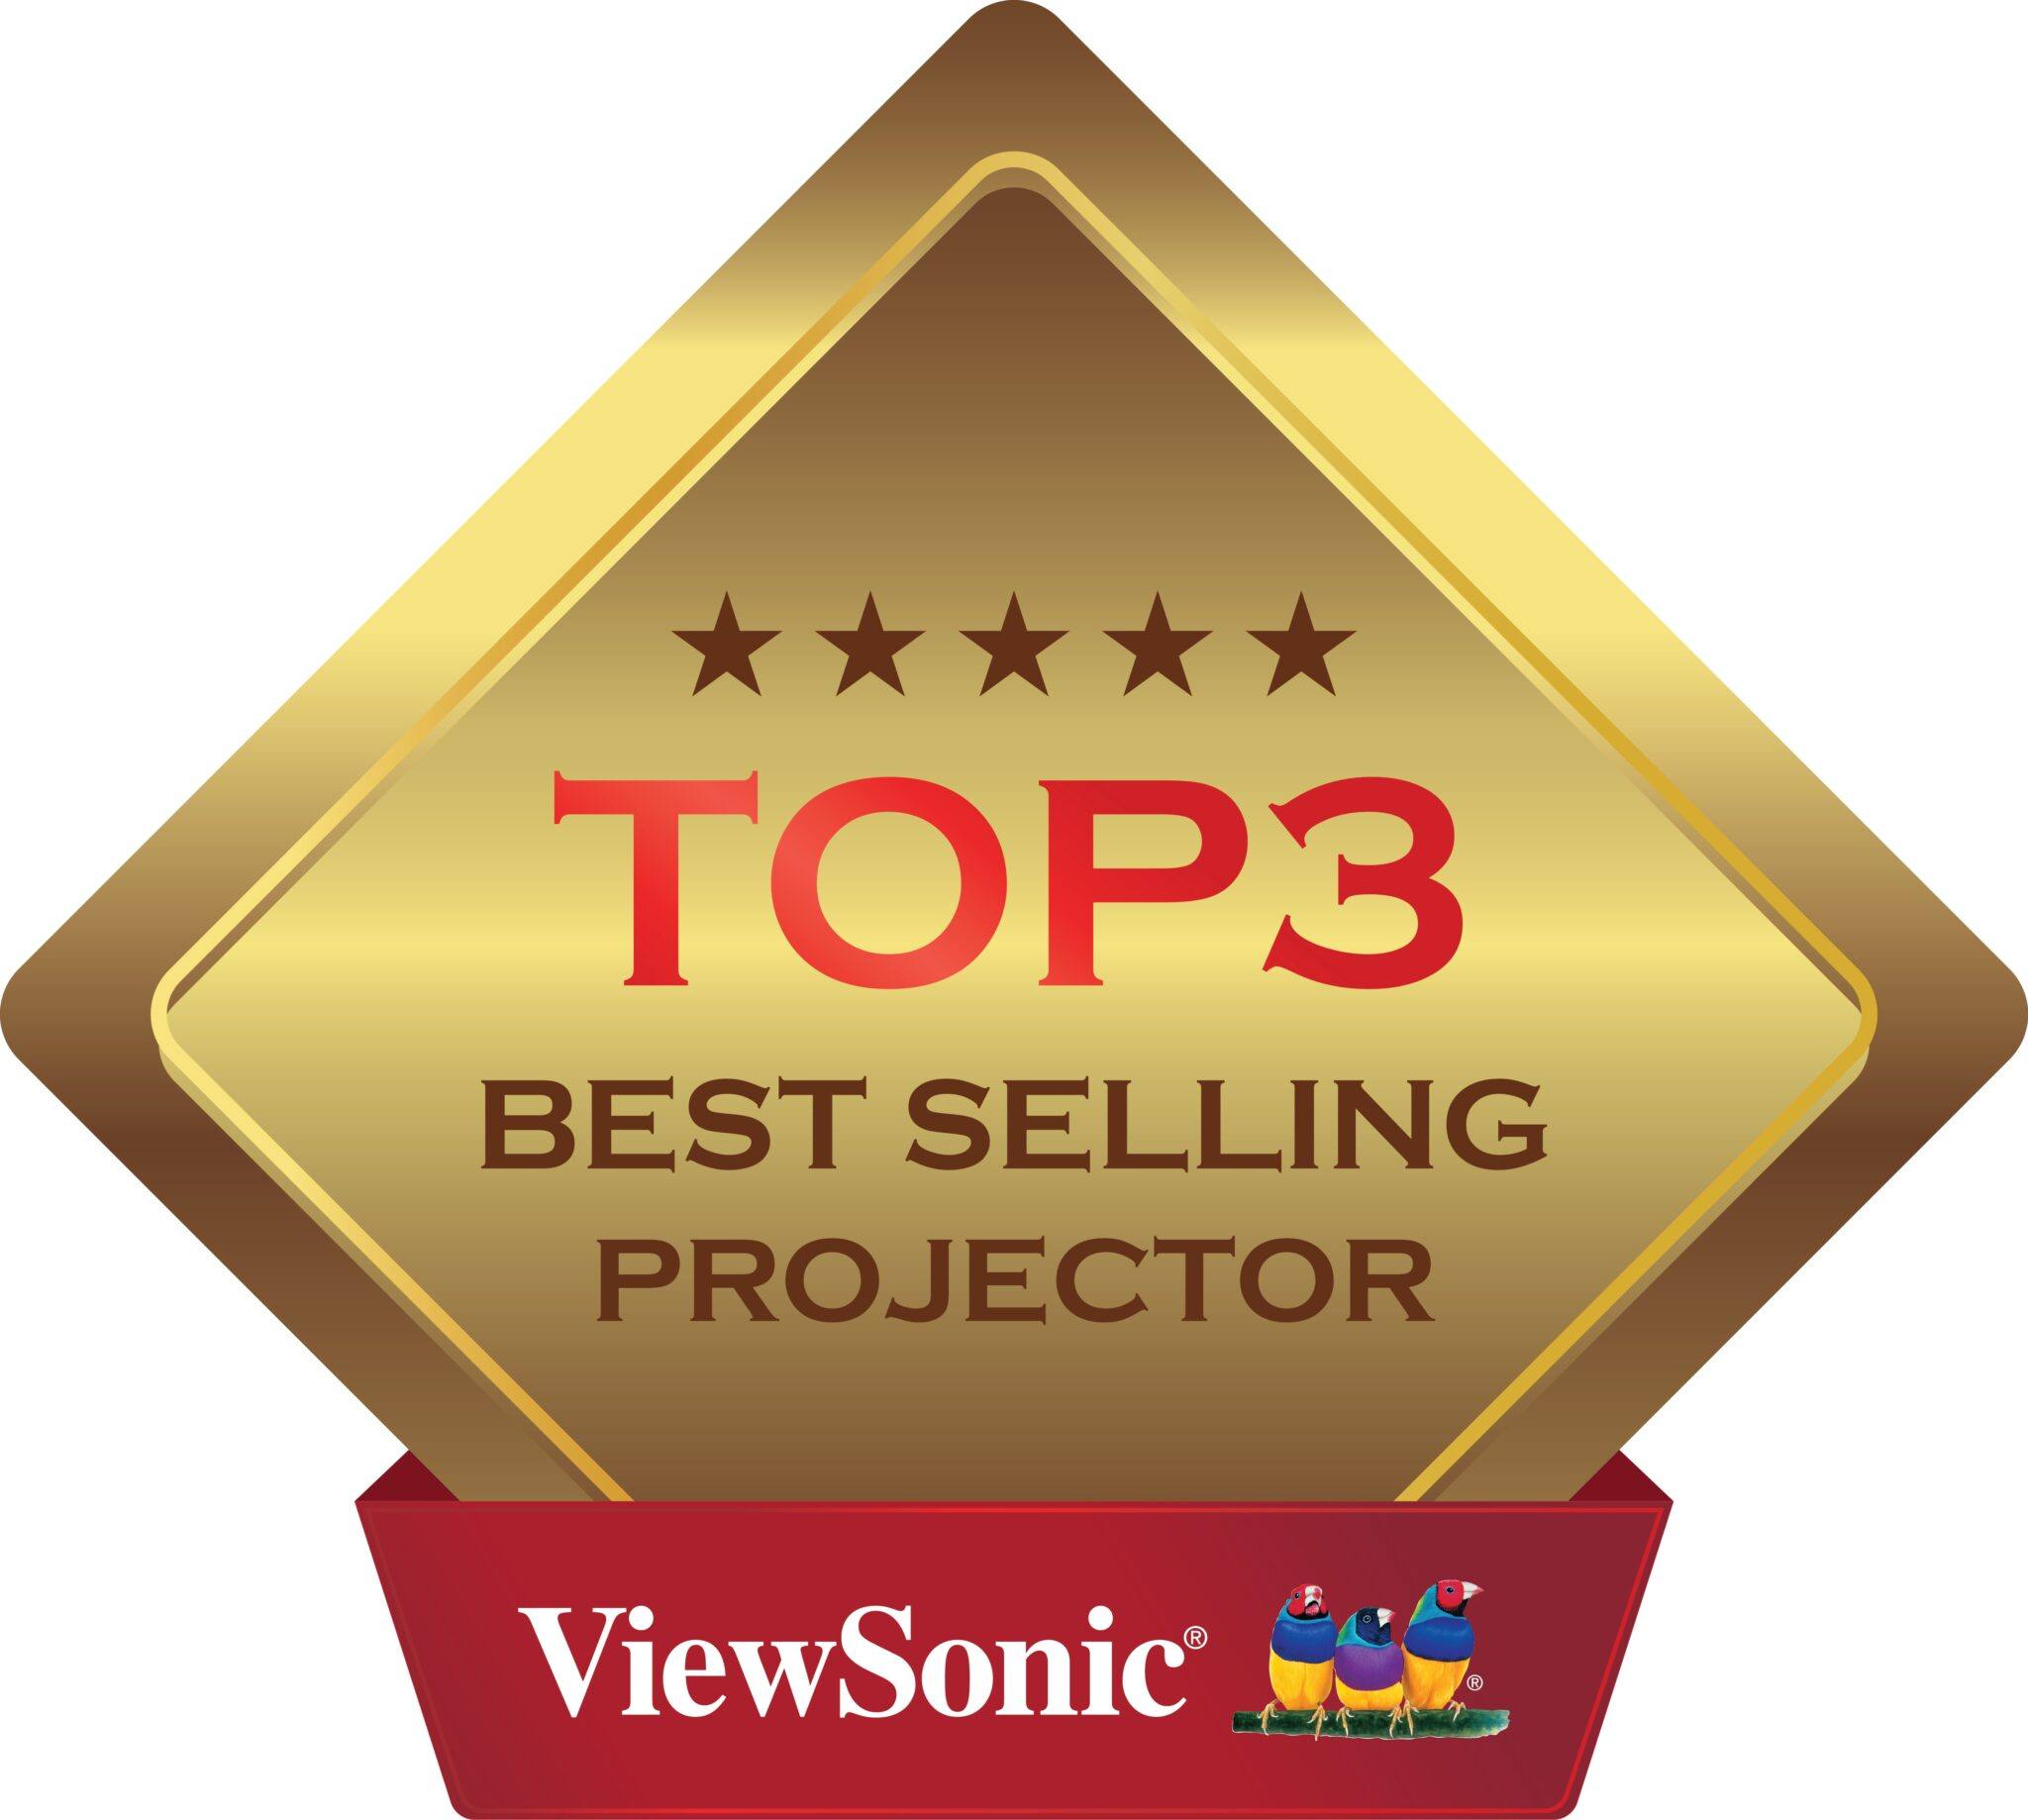 Viewsonic LED top 3